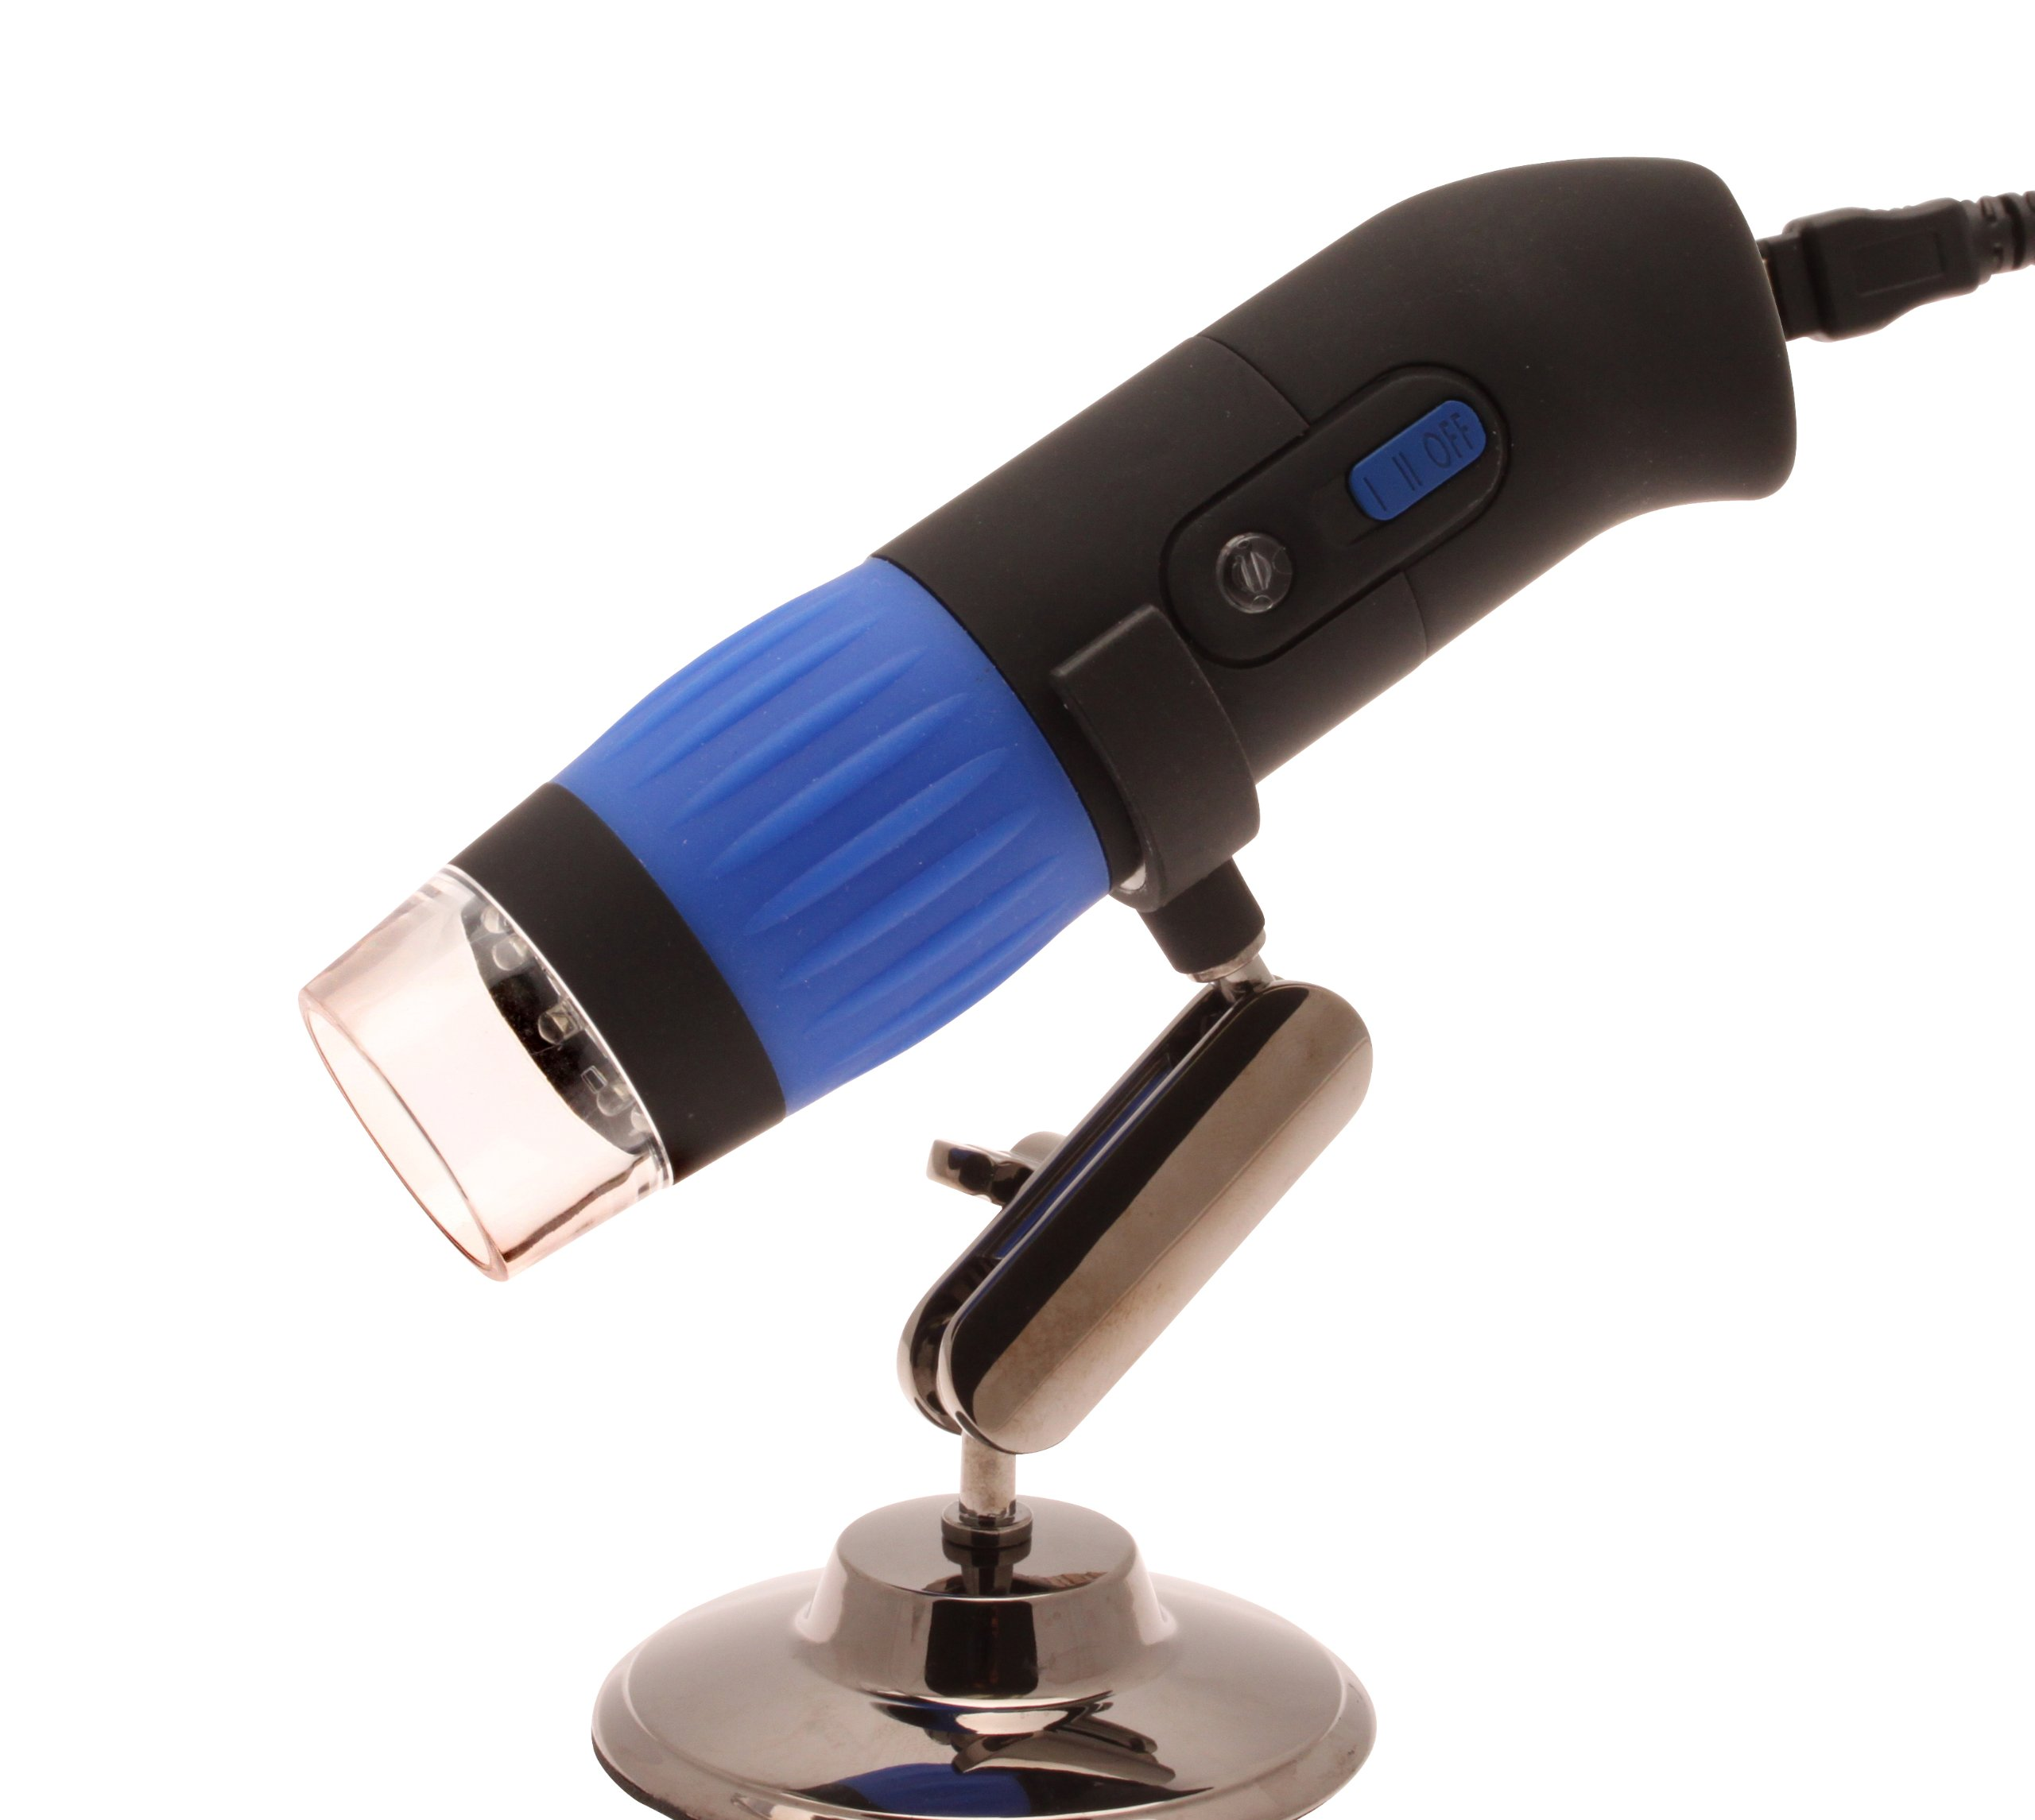 Aven 26700-300 ZipScope USB Digital Microscope with 2 Mega-Pixel 10x-50x Optical, 200x Digital Magnification by Aven